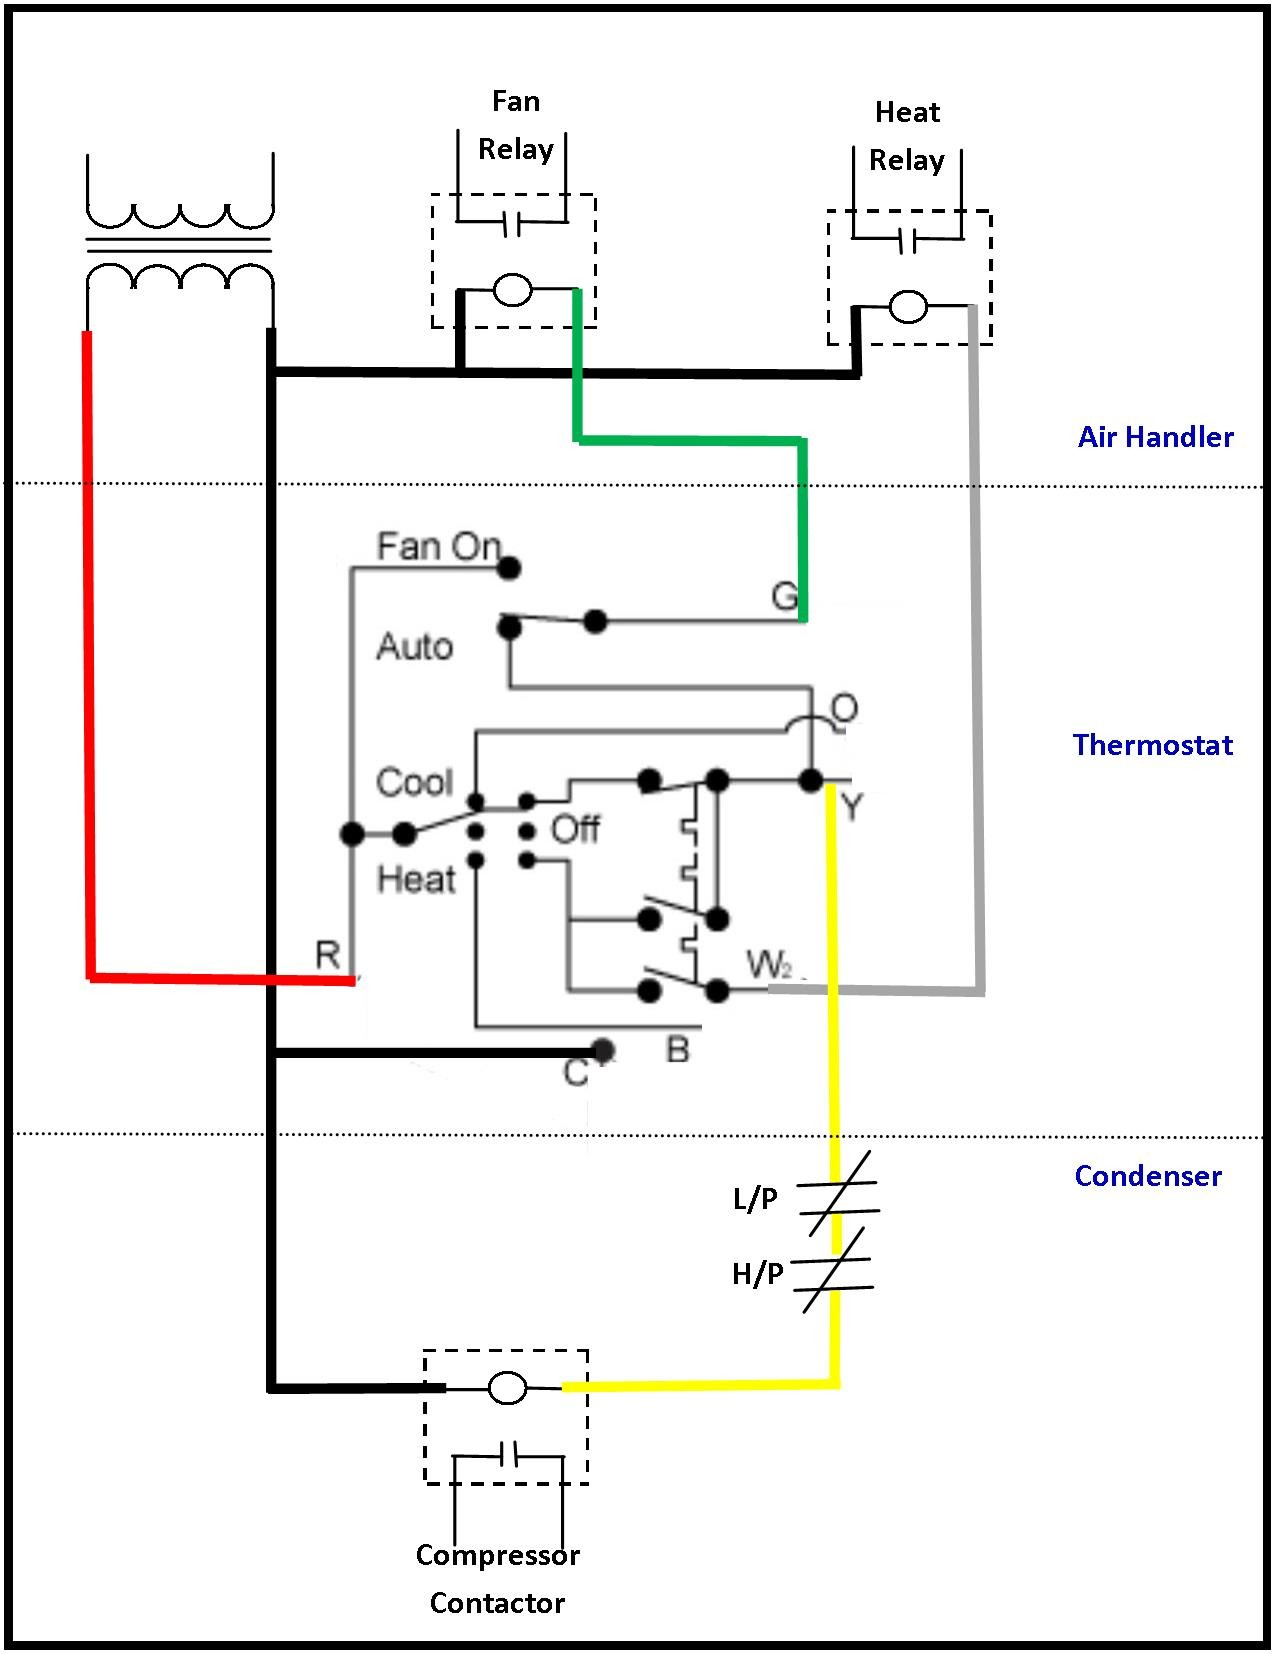 480 Volt Motor Wiring Diagram Electrical Drawing 110 3 Phase Images Gallery